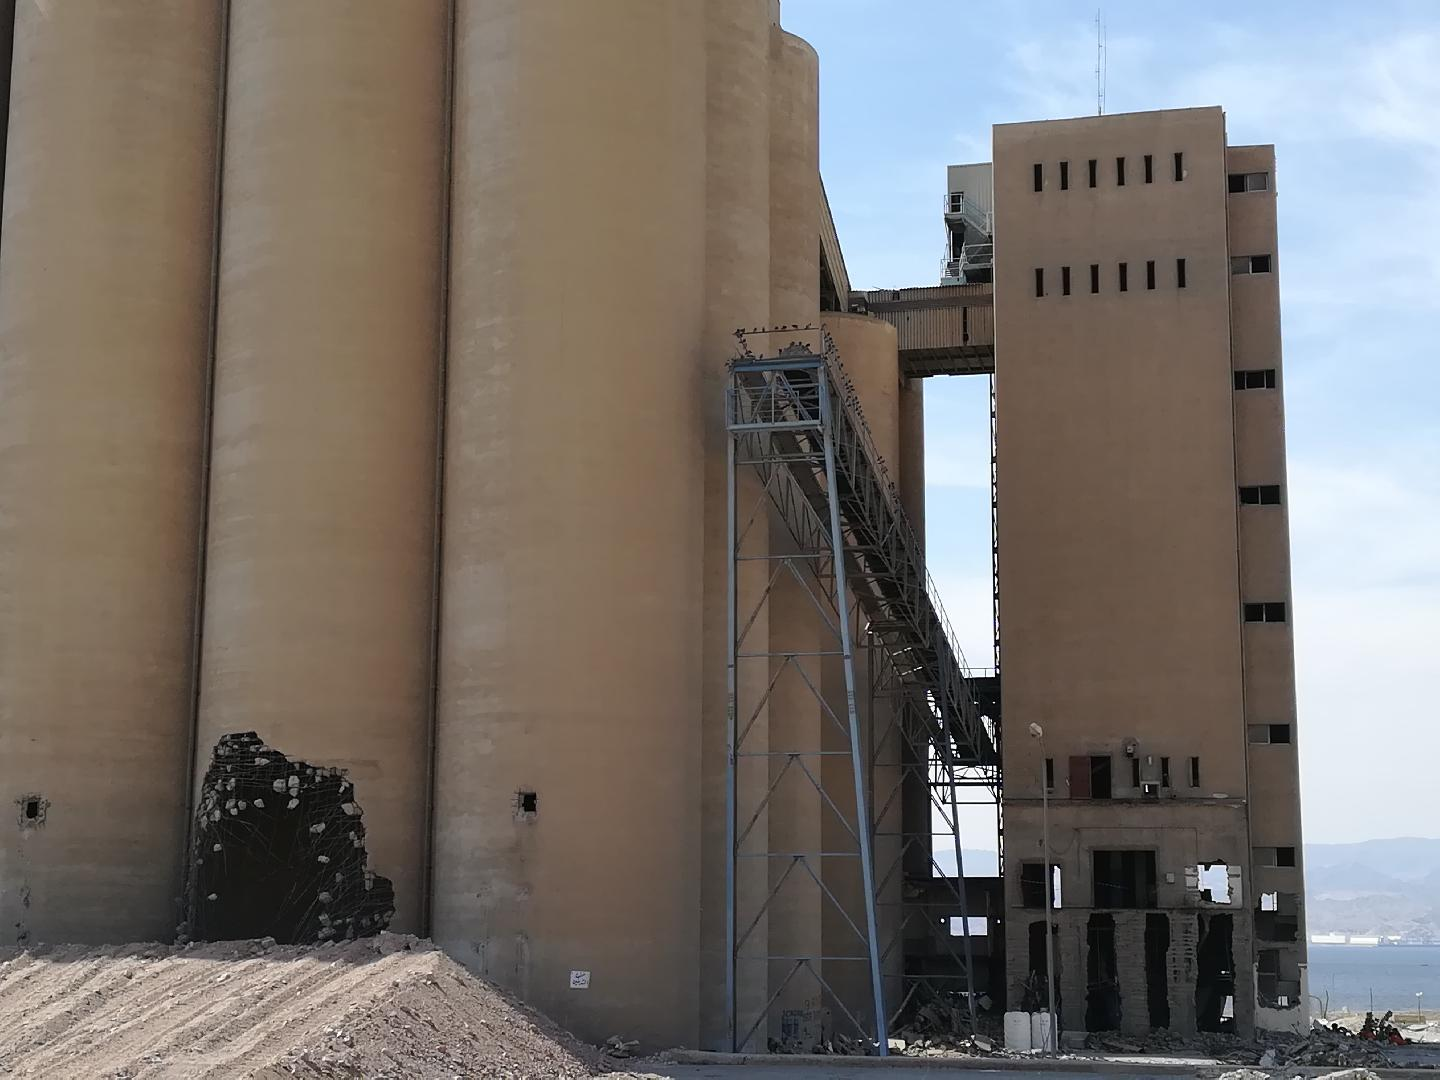 Combustible dust explosions in grain processing and handling facilities